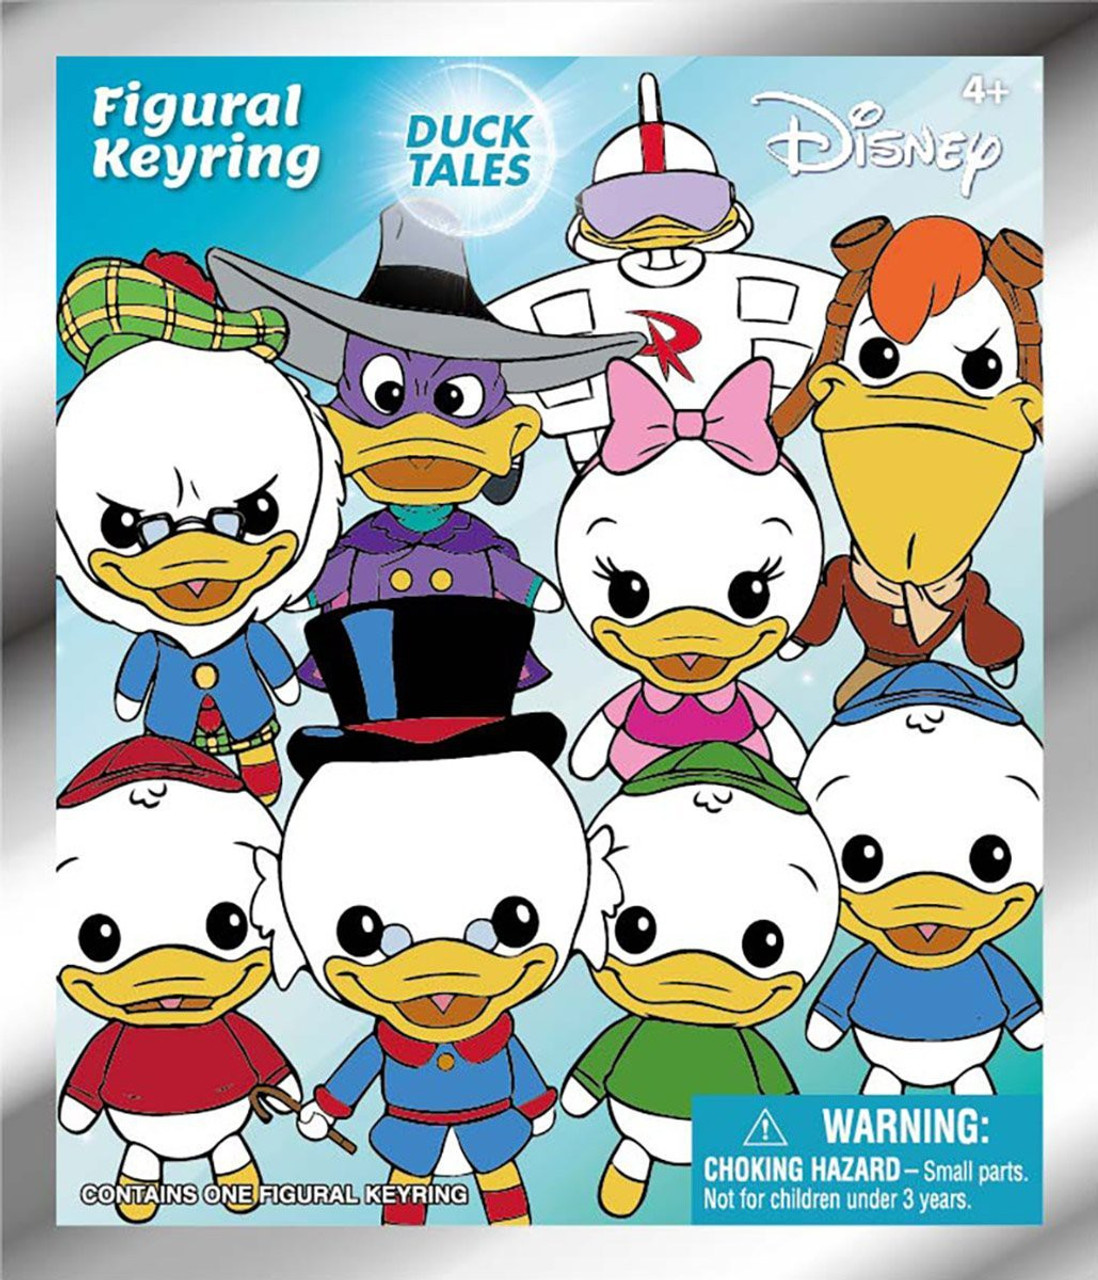 Disney 3D Figural Keyring DuckTales Mystery Box [24 Packs]